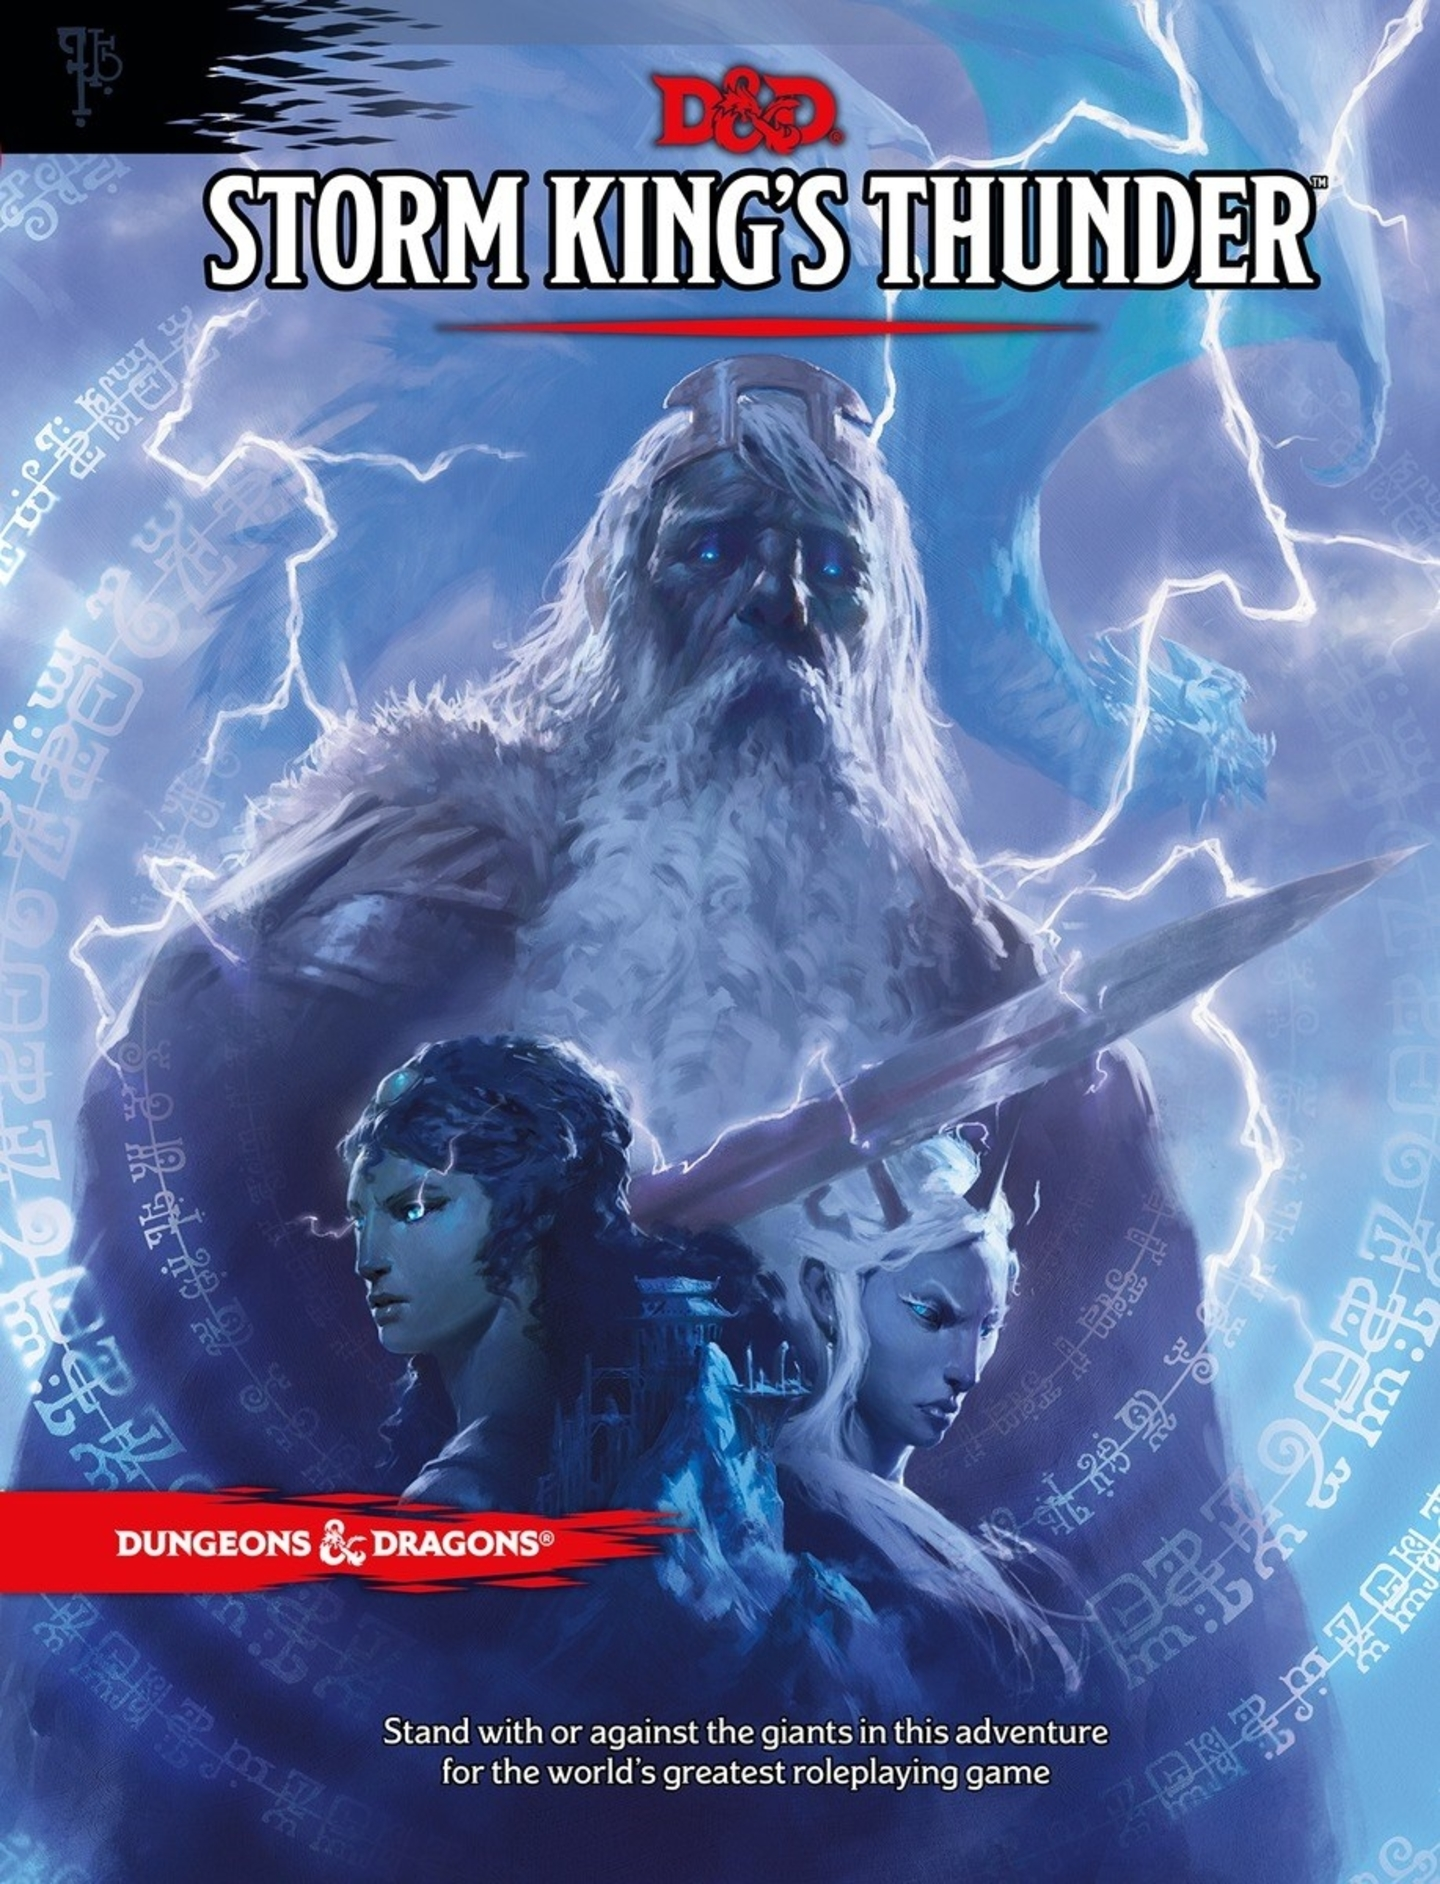 Storm King S Thunder Forgotten Realms Wiki Fandom A dungeon master and d&d player guide for d&d 5e spells. storm king s thunder forgotten realms